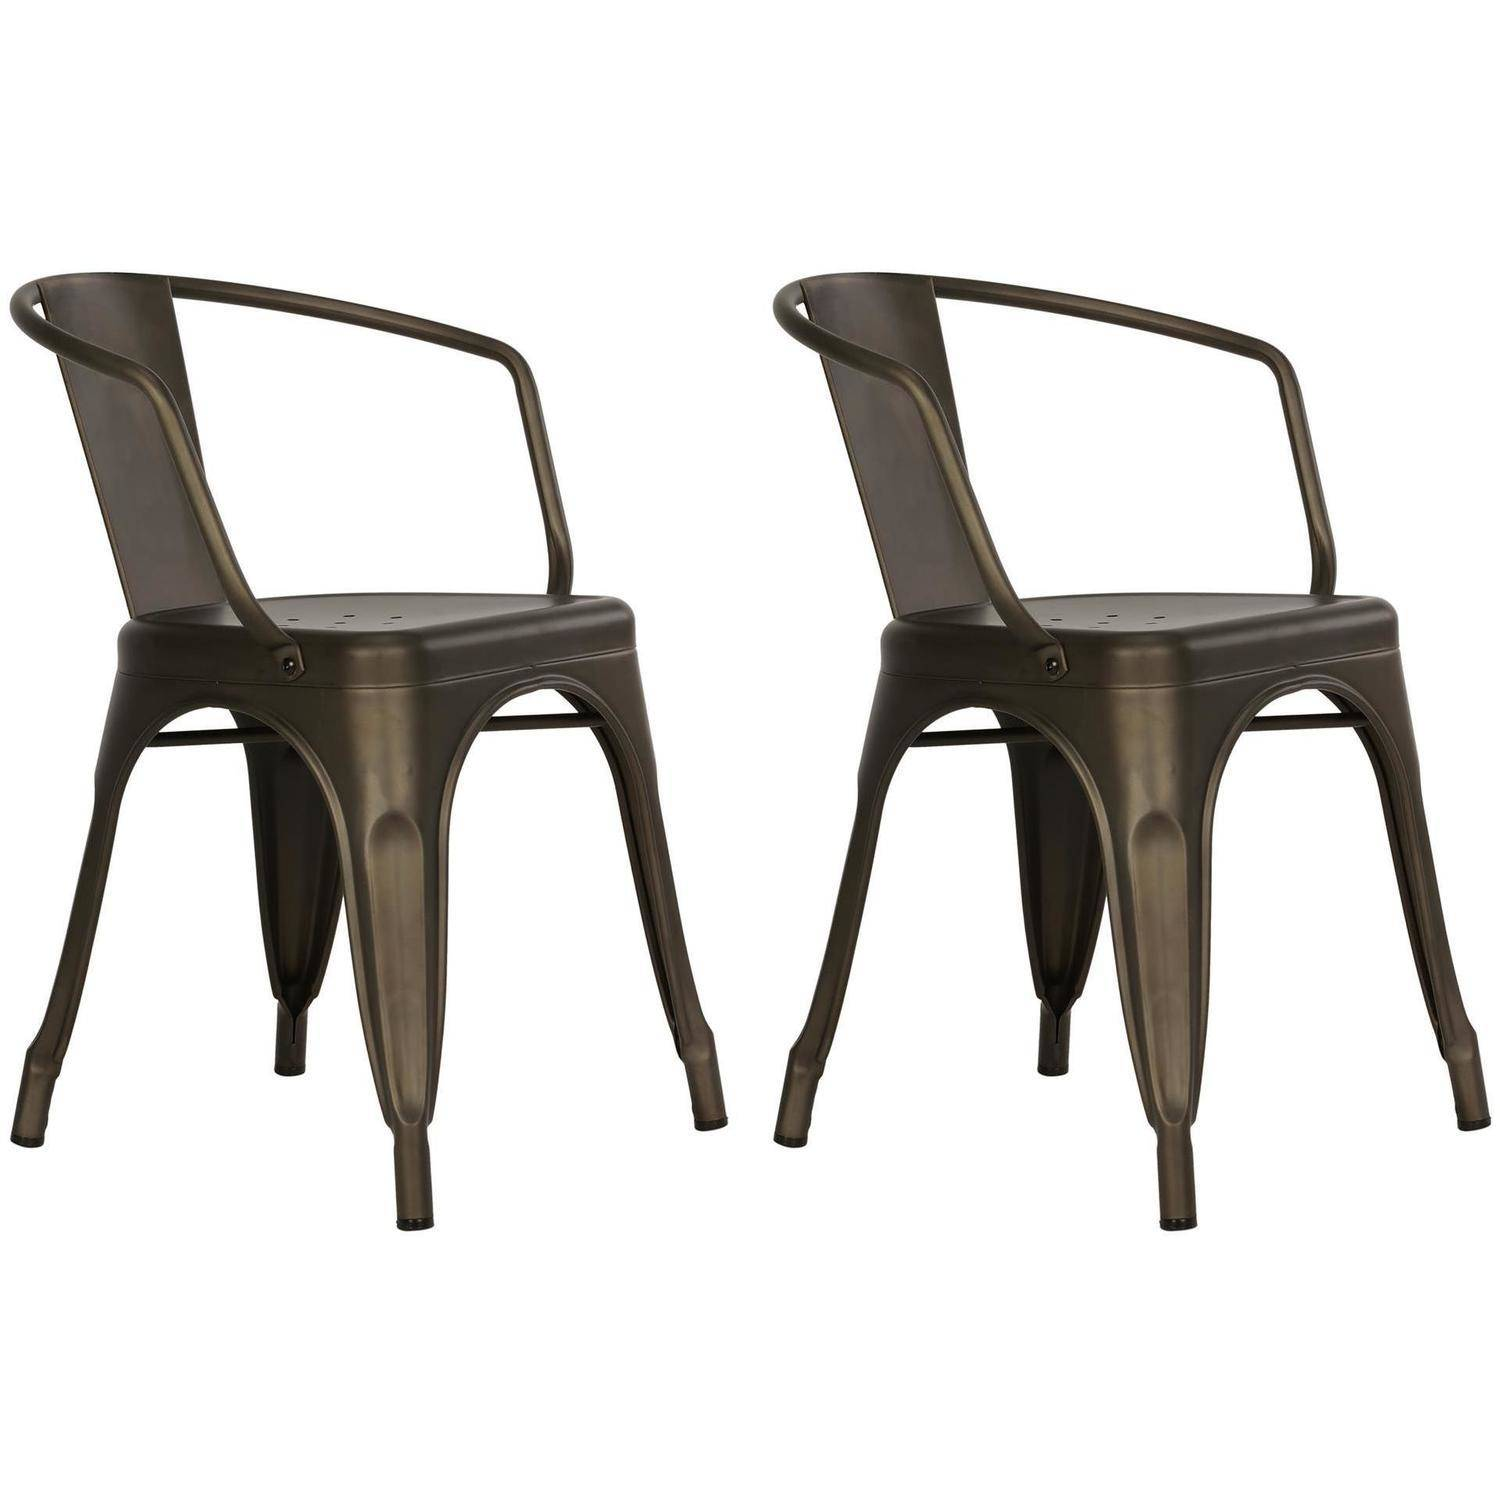 Dorel Home Products Elise Metal Dining Chair, Set Of 2, Multiple Colors    Walmart.com